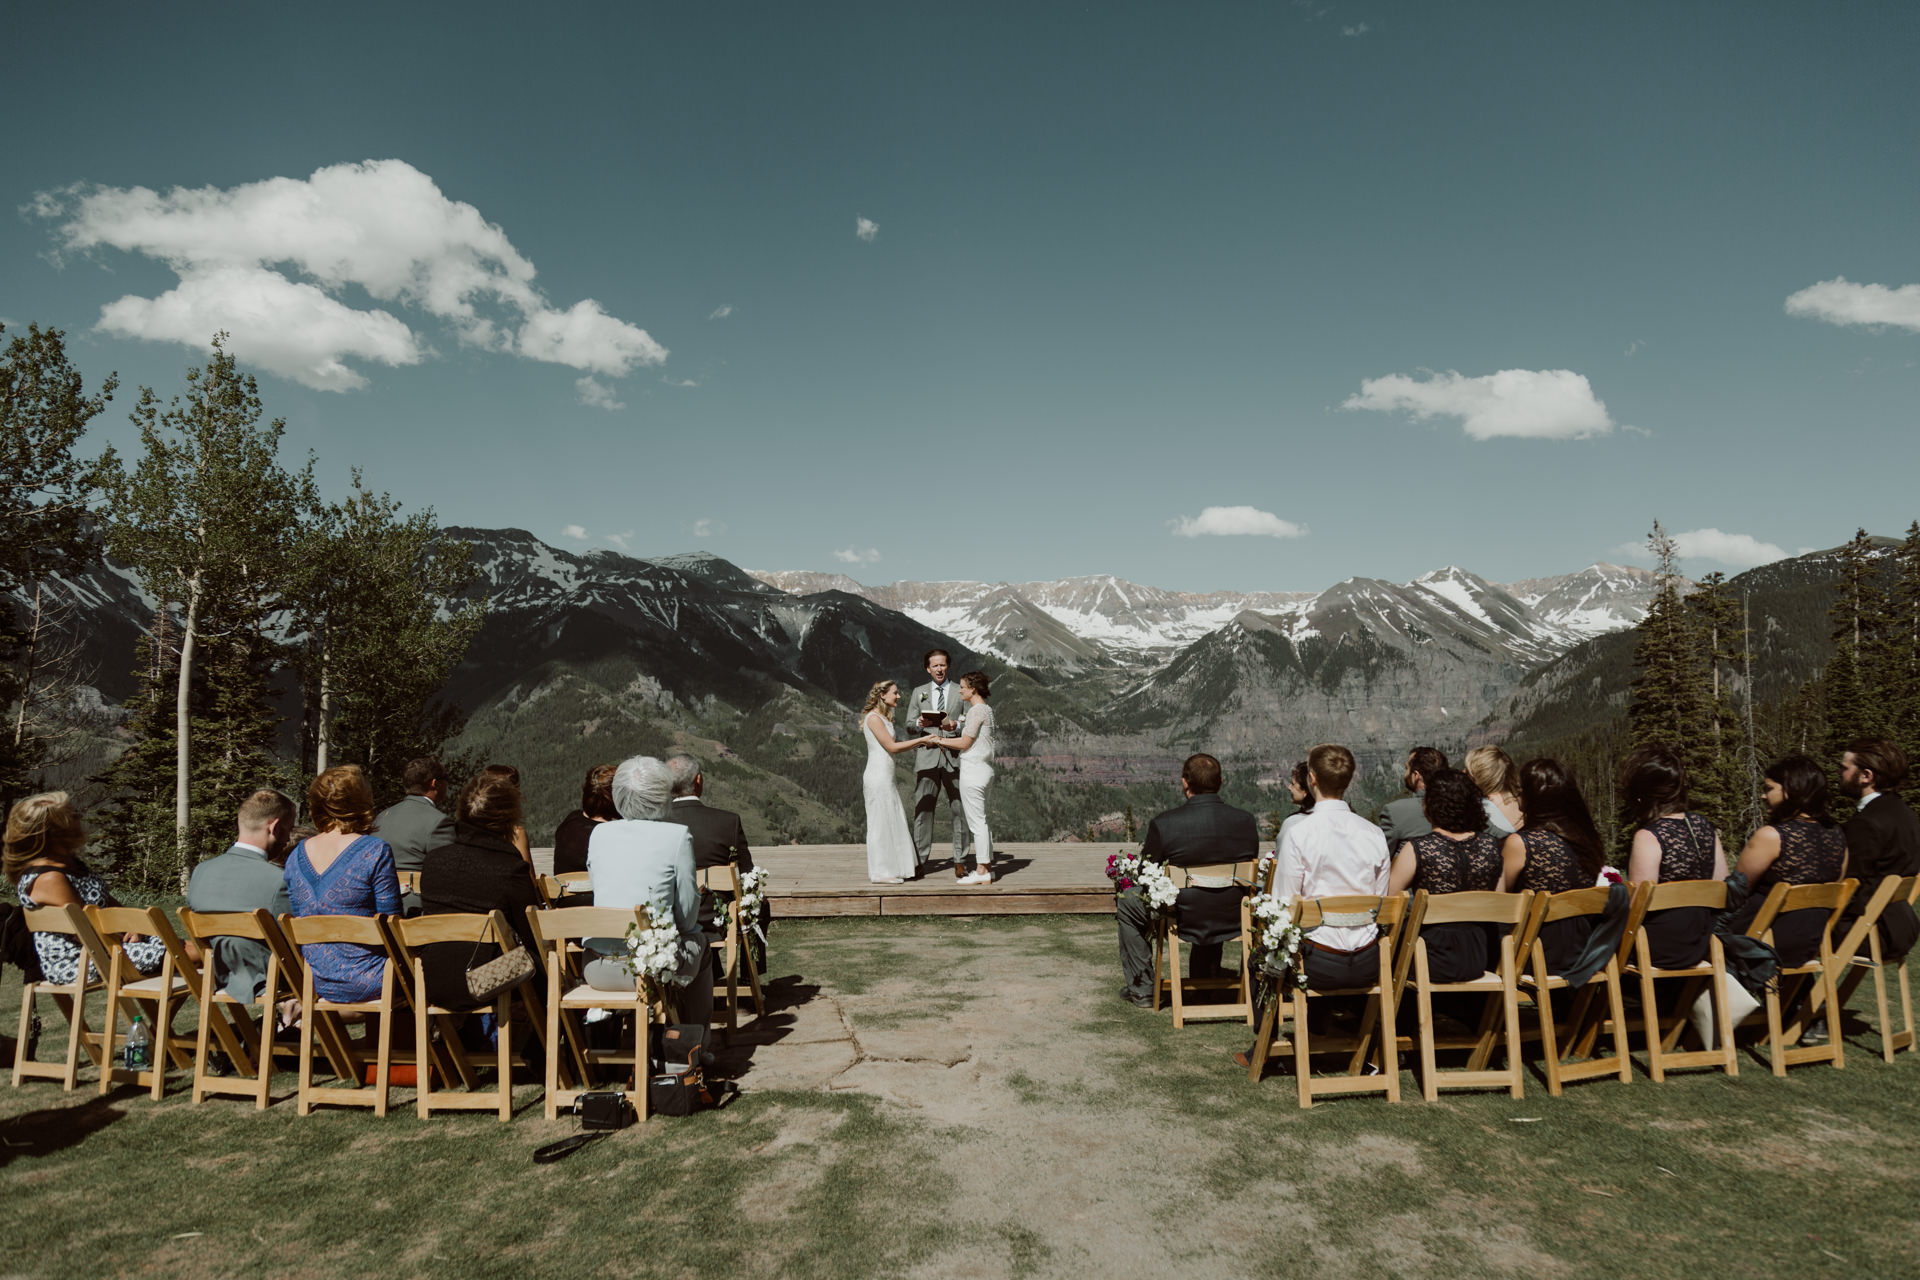 cedarandpines-intimate-san-sofia-telluride-colorado-wedding-17.jpg